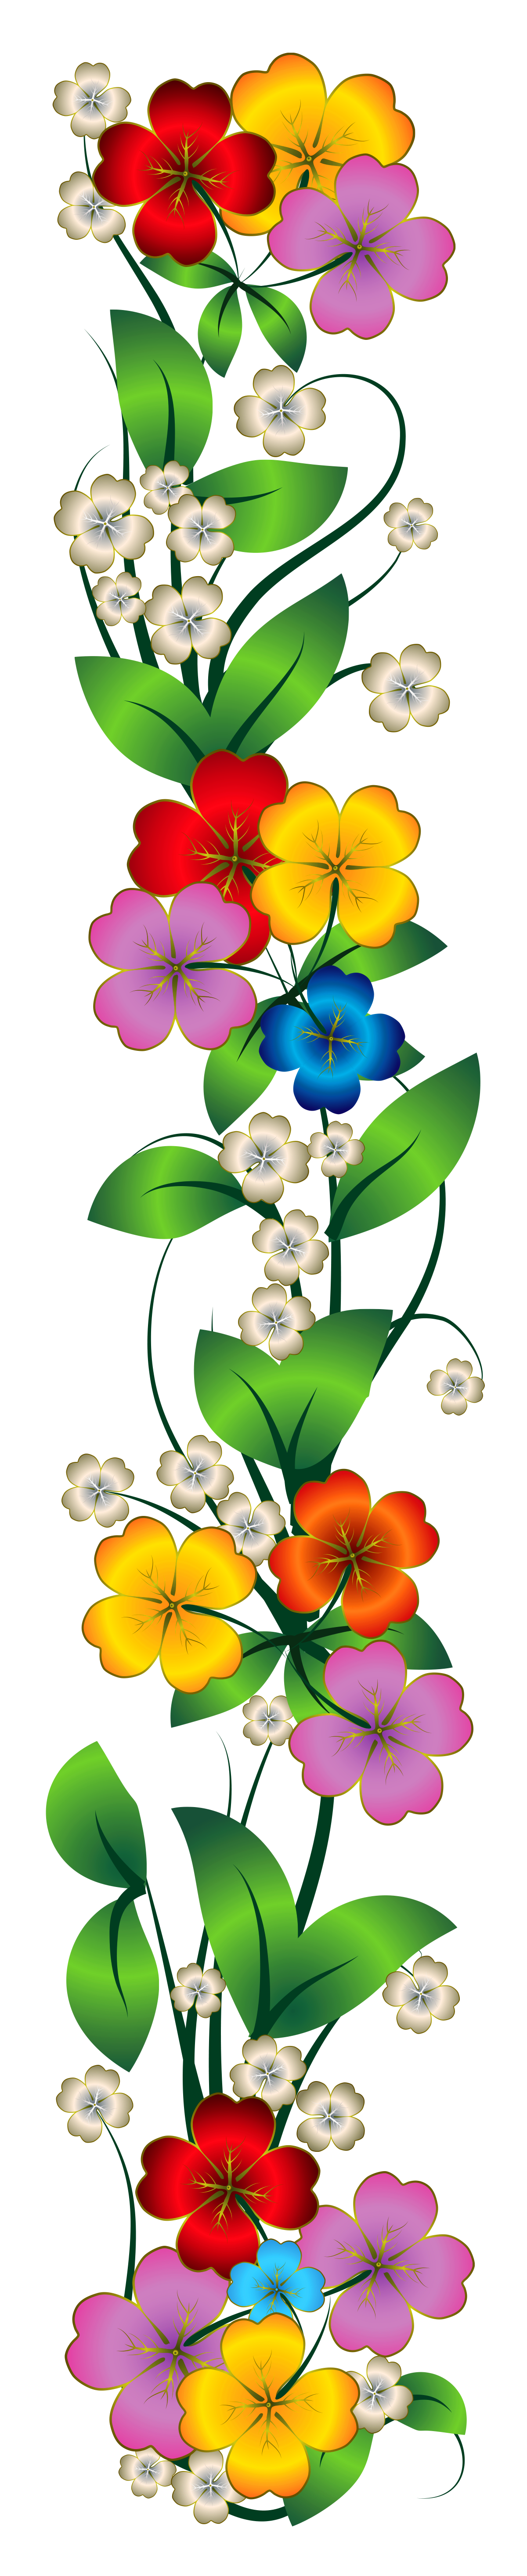 Pin By I T On Illustrations Flowers Pinterest Blumen Vorlagen